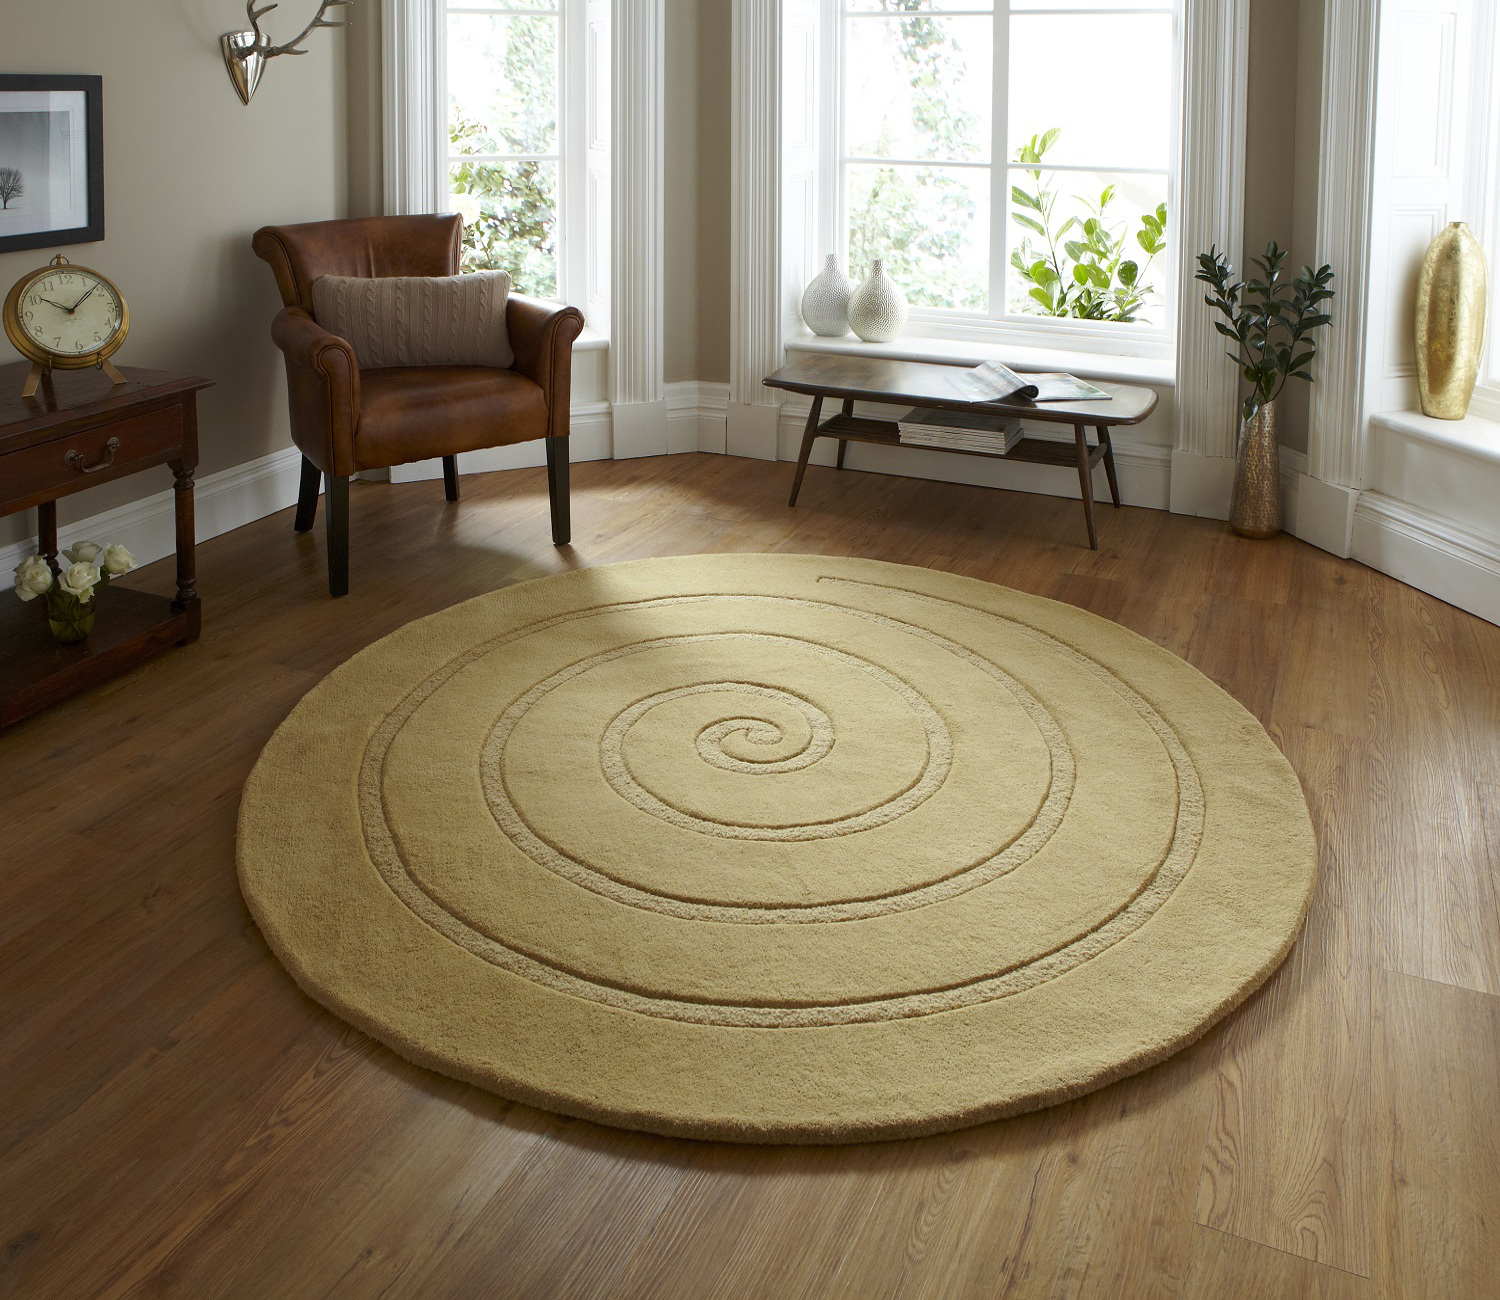 Small Round Area Rugs  This Round Rug Will Really Set Off A Spacious Floor